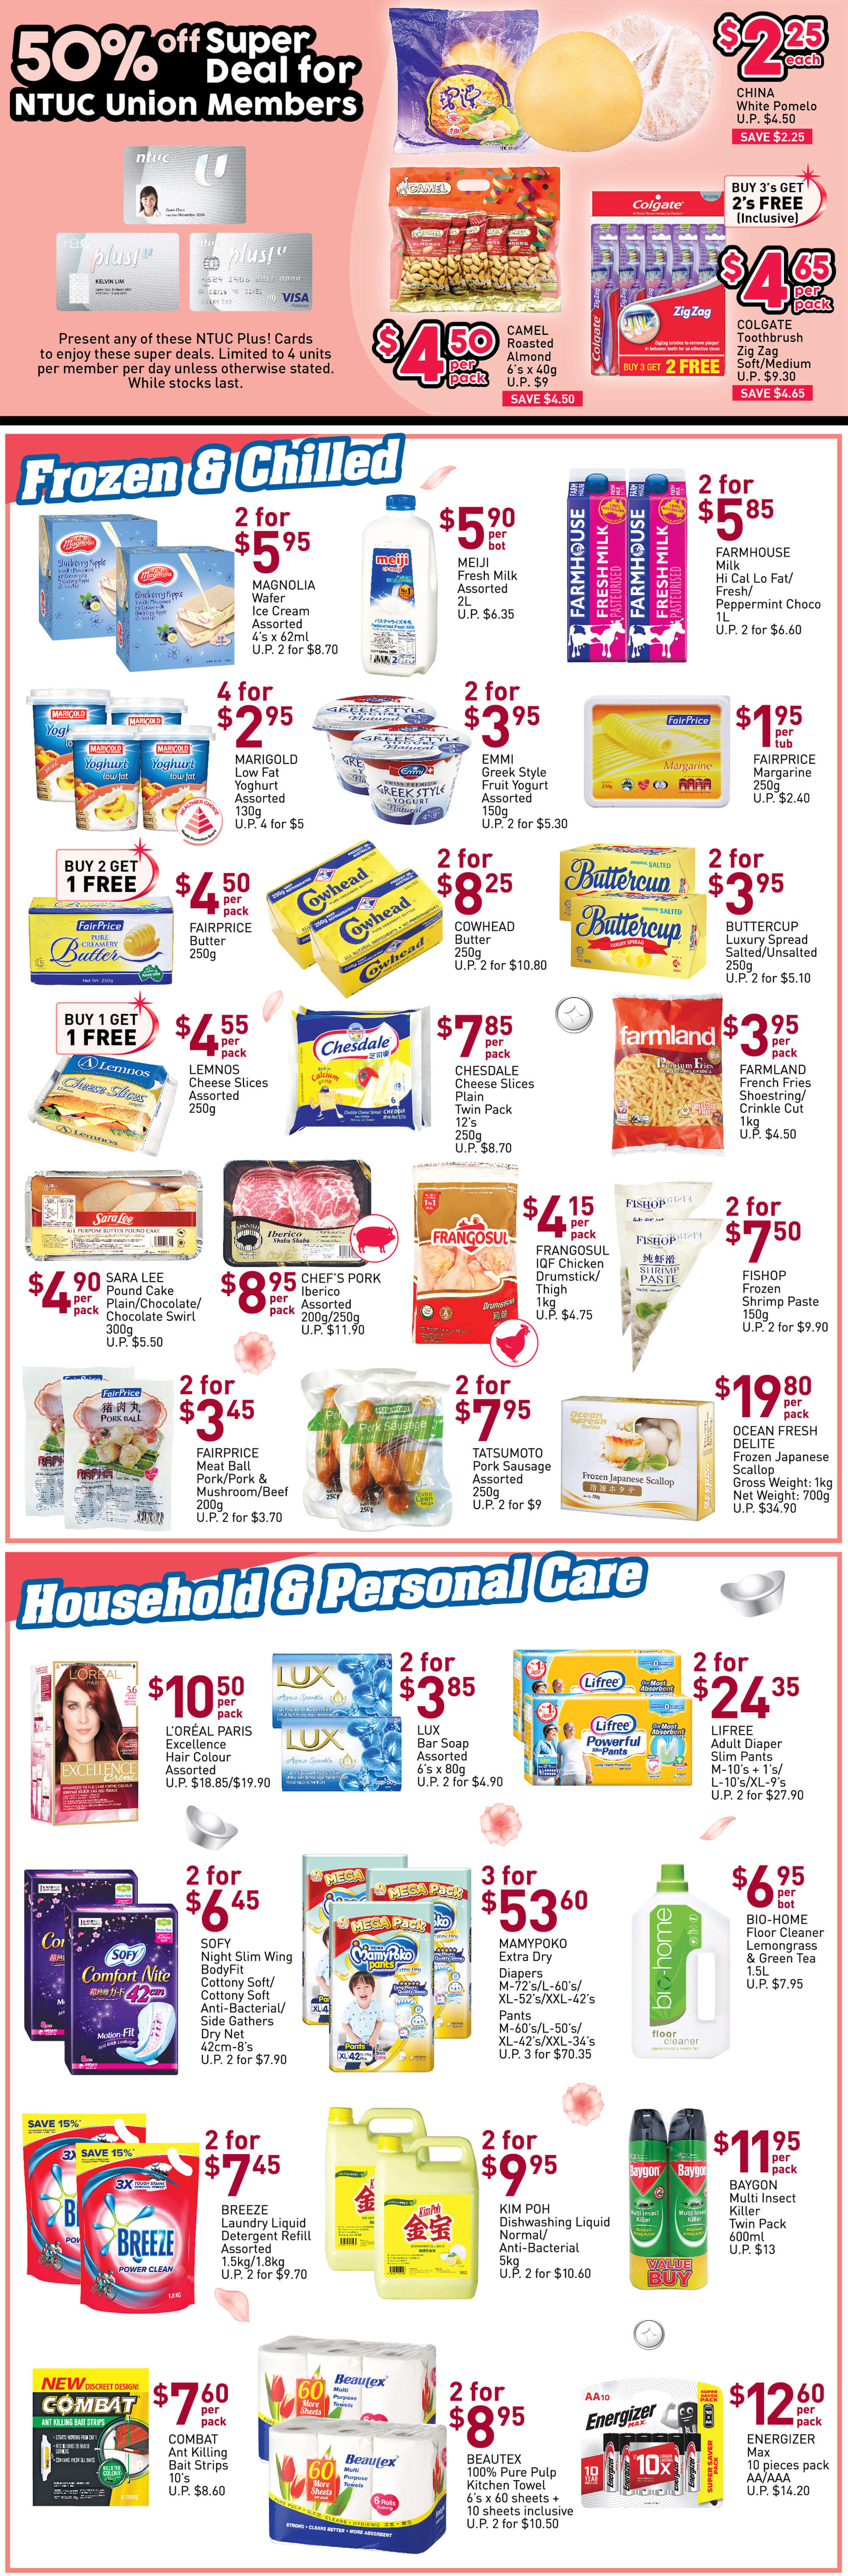 NTUC FairPrice SG Your Weekly Saver Promotions 9-15 Jan 2020 | Why Not Deals 8 & Promotions